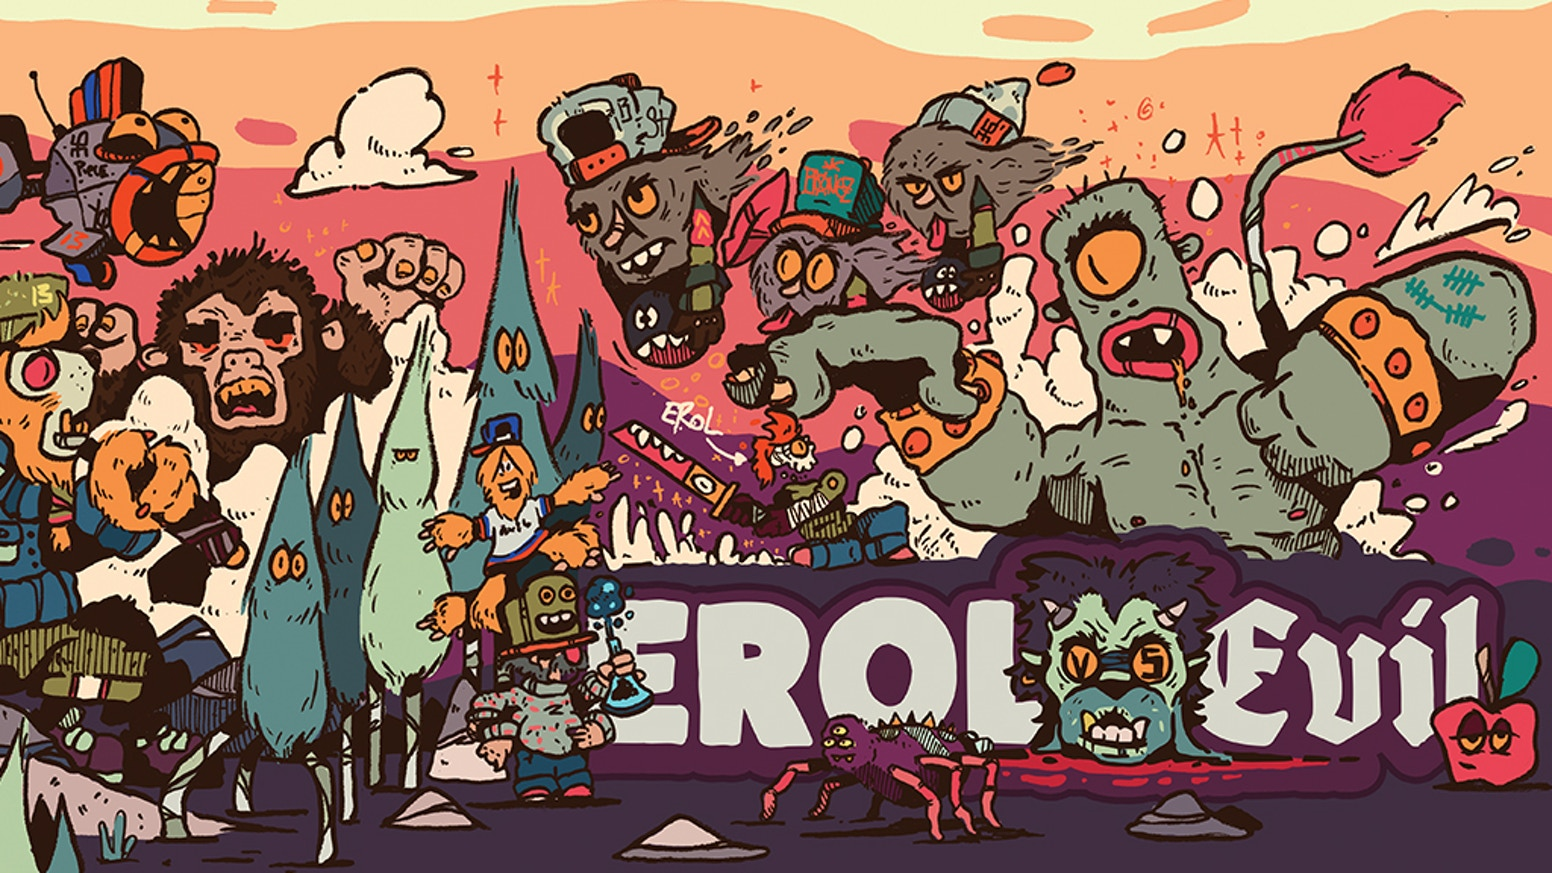 Erol Vs Evil is a tale of a BoneHead and his ambition to level up and become a member of the Piece Brigade!